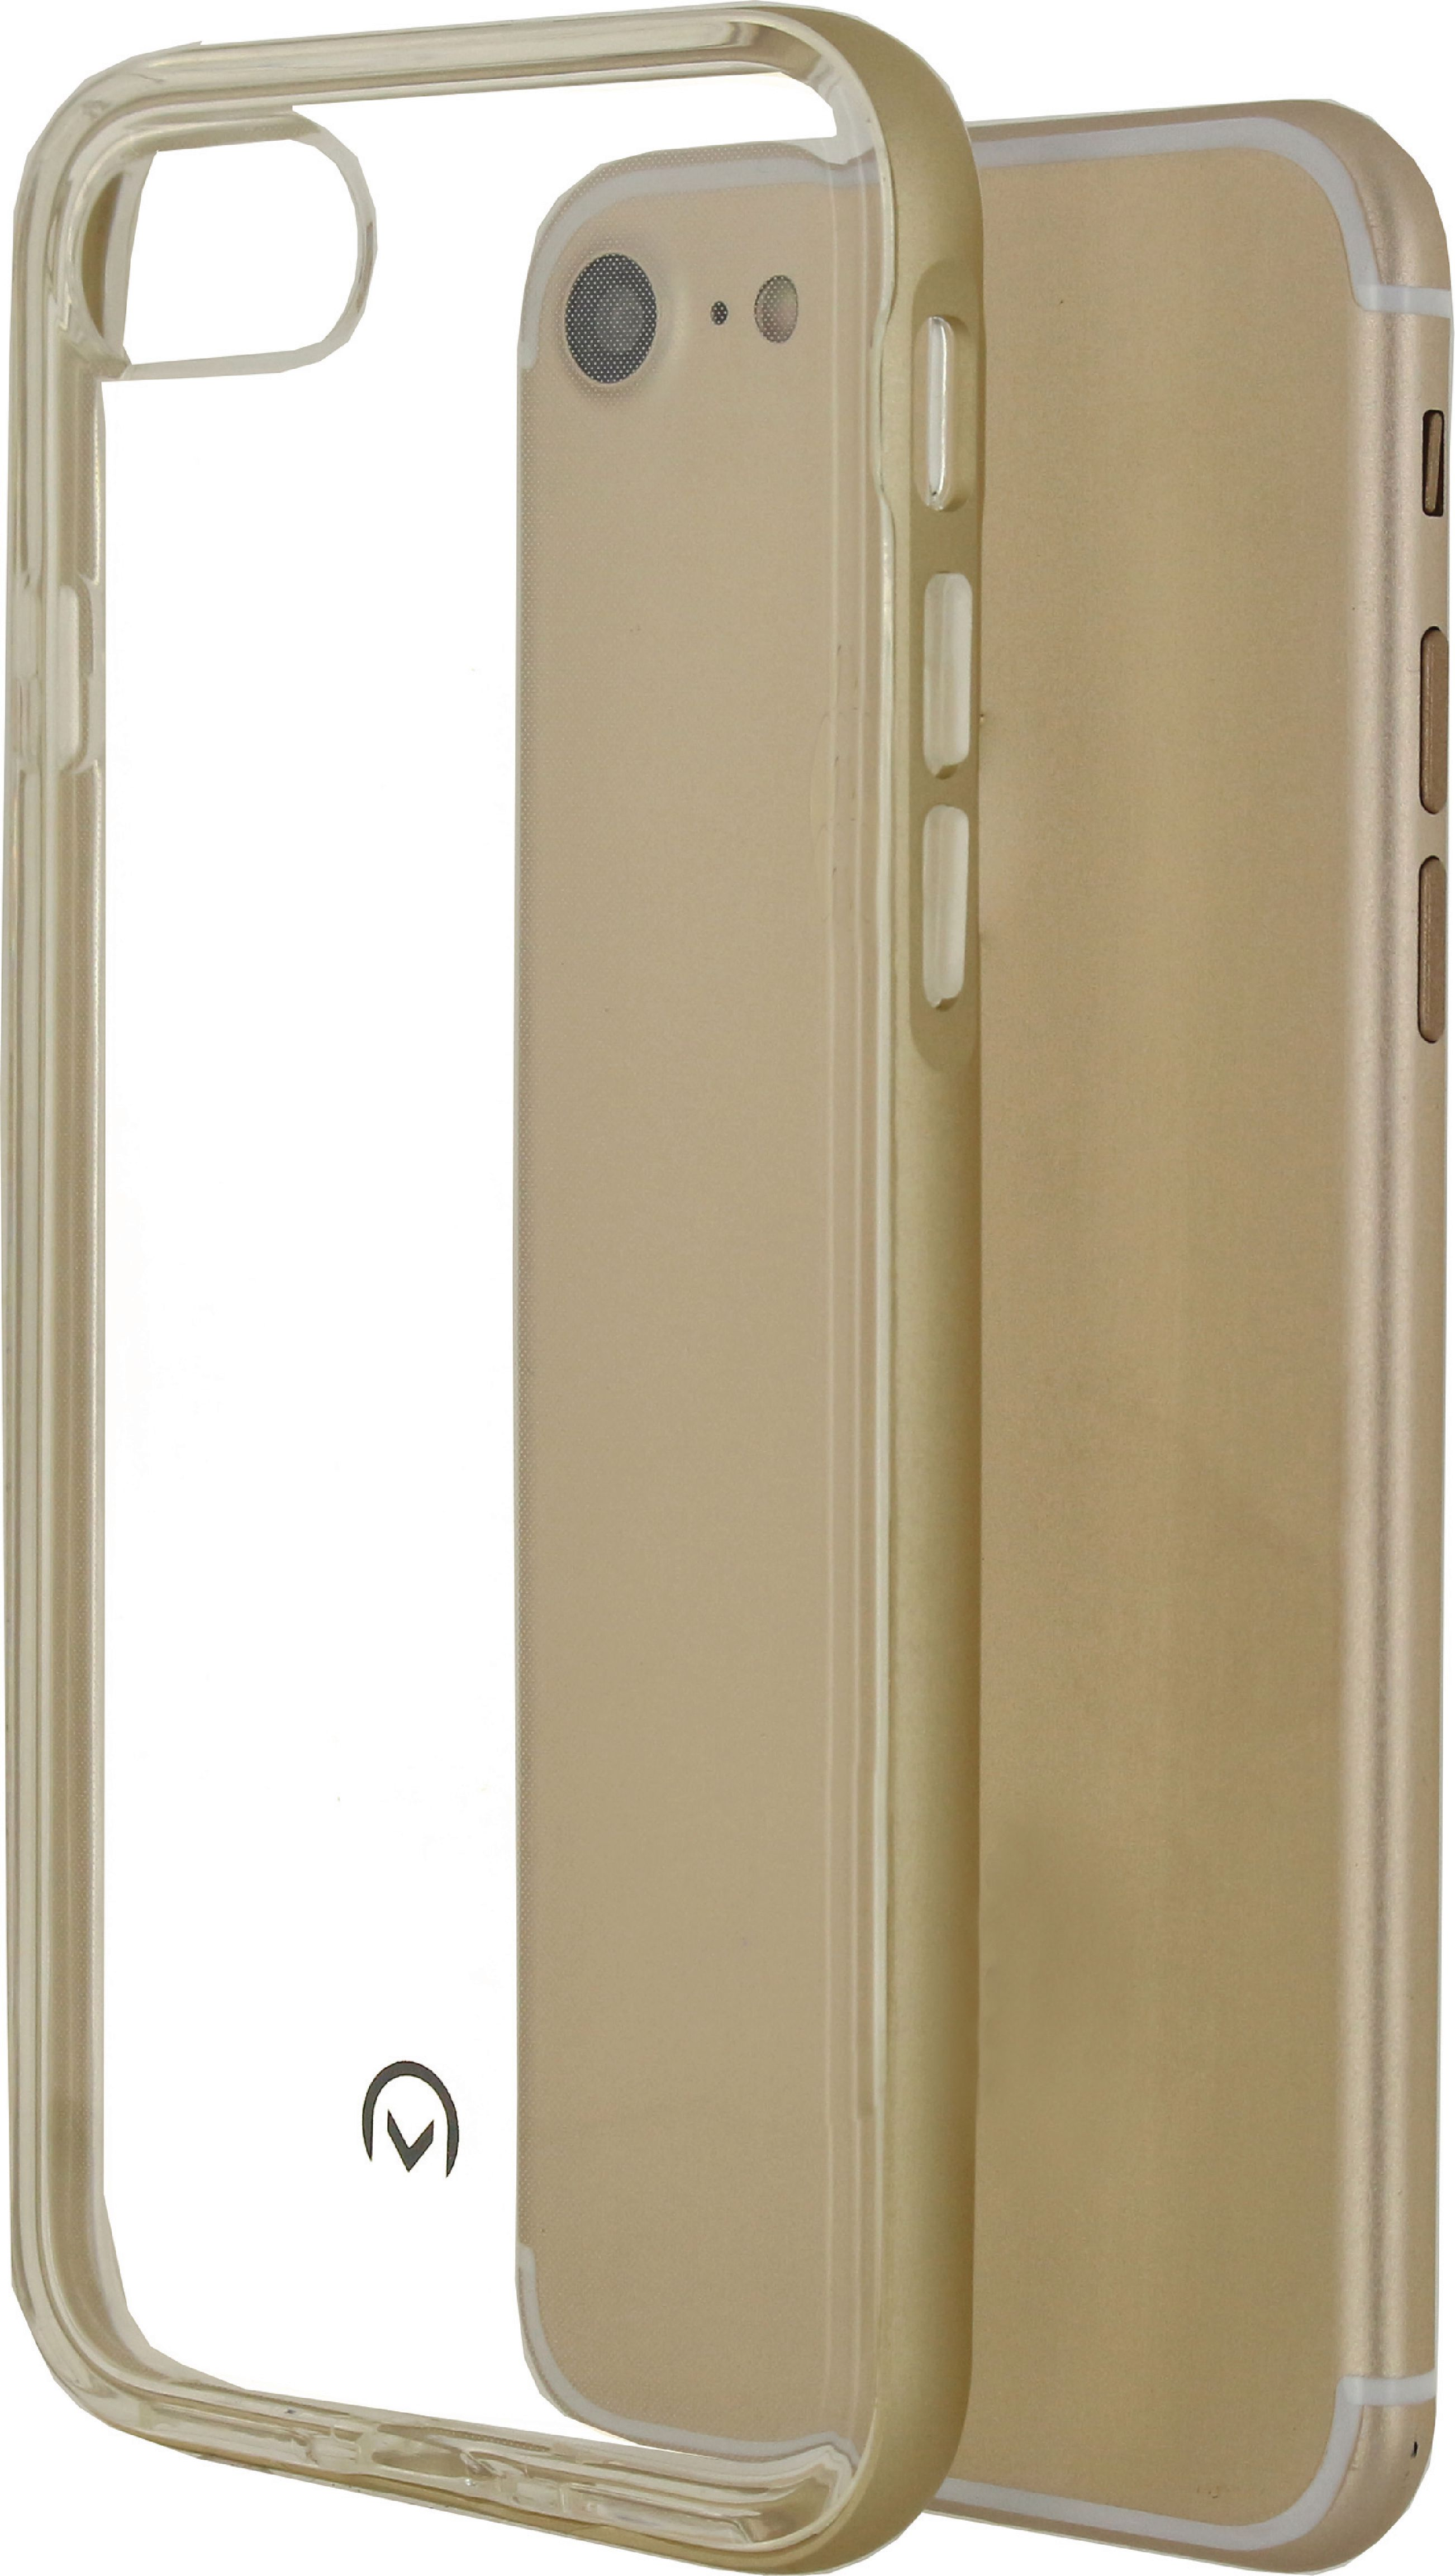 Image of   Telefon Gelly+ Etui Apple iPhone 7 / Apple iPhone 8 Guld